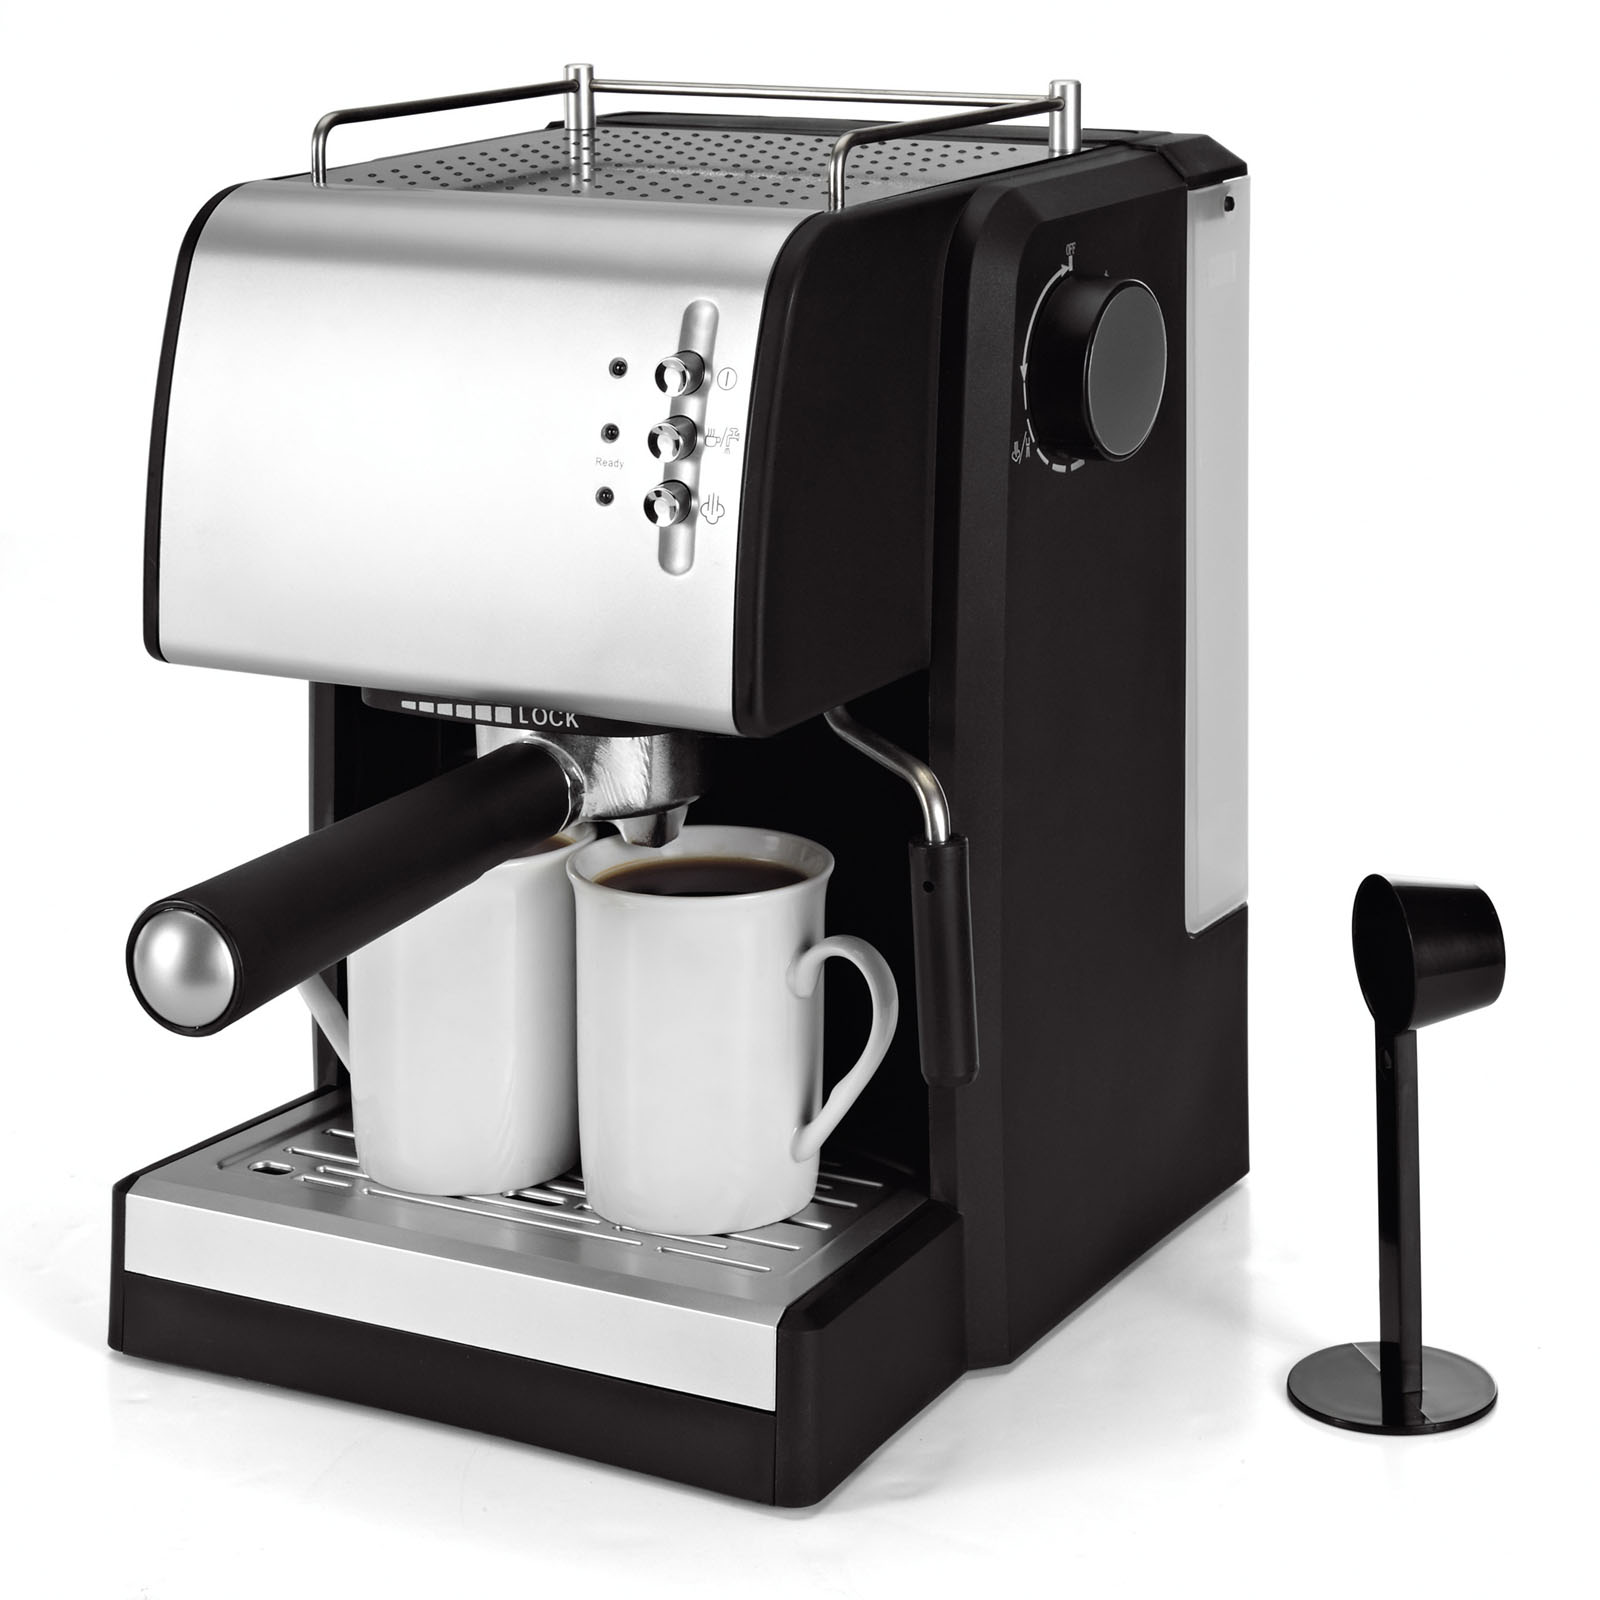 Cuisidom268 electrom nager cadeaux d 39 affaires - Machine a cafe design ...